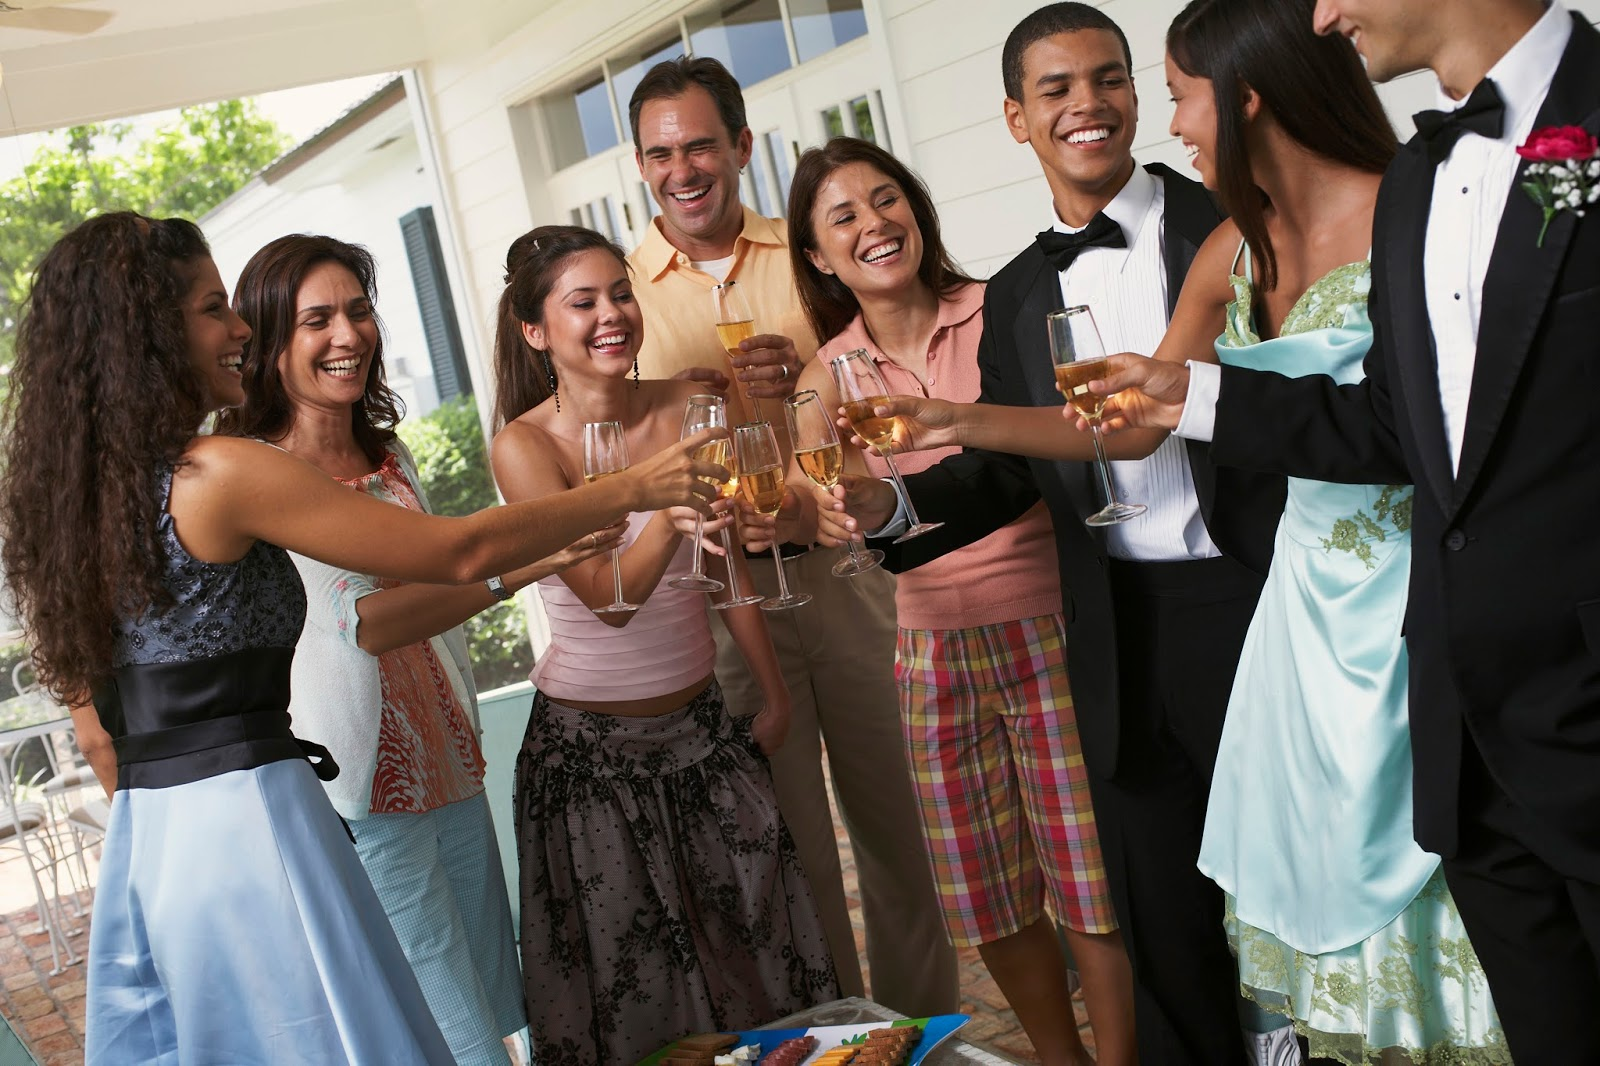 Why do parents make the decision to let their teen drink? Is